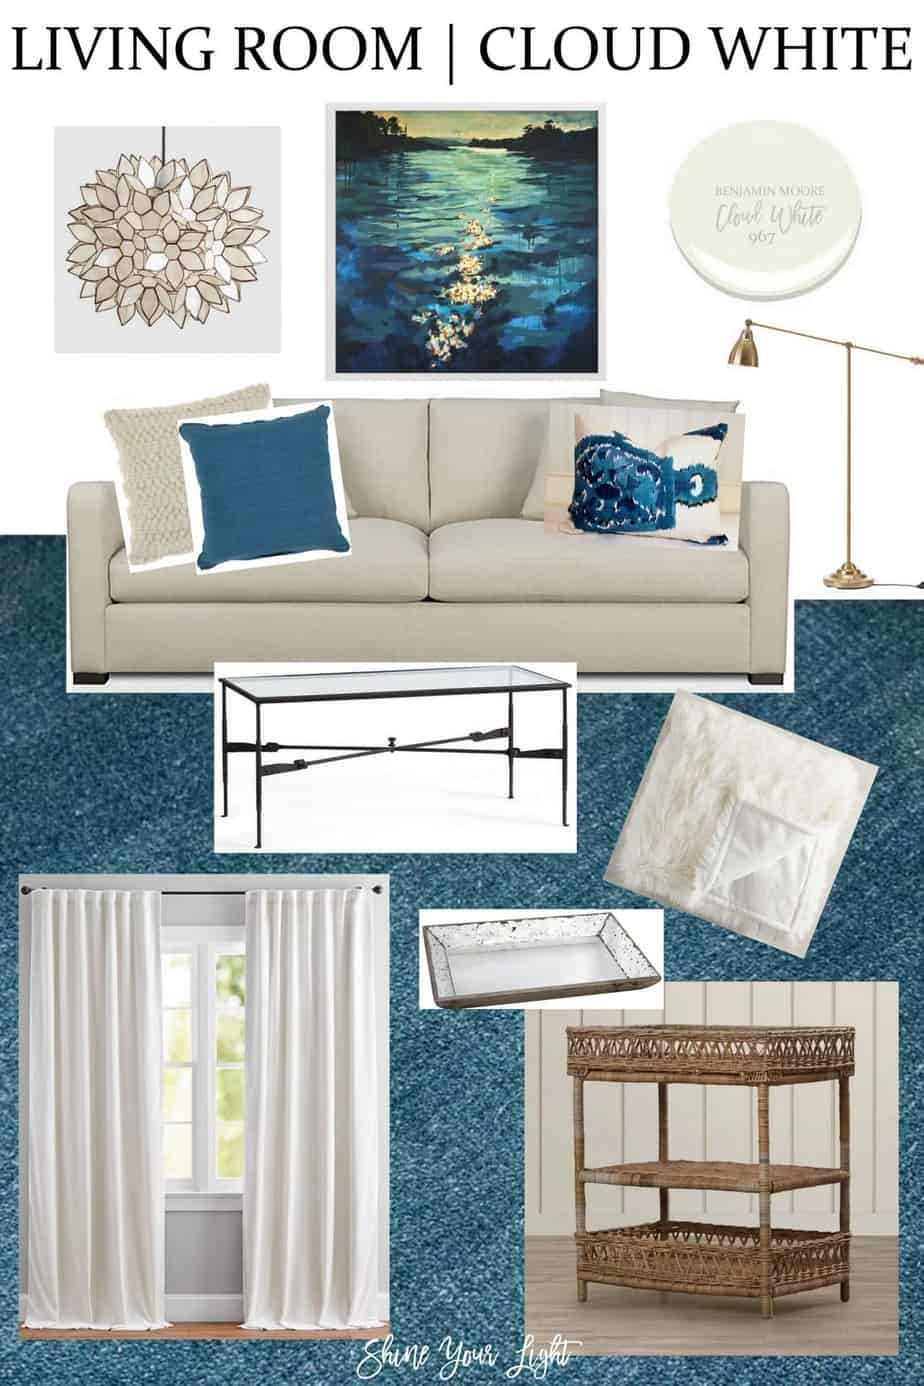 Teal, Cream And White Living Room Design. Part 25